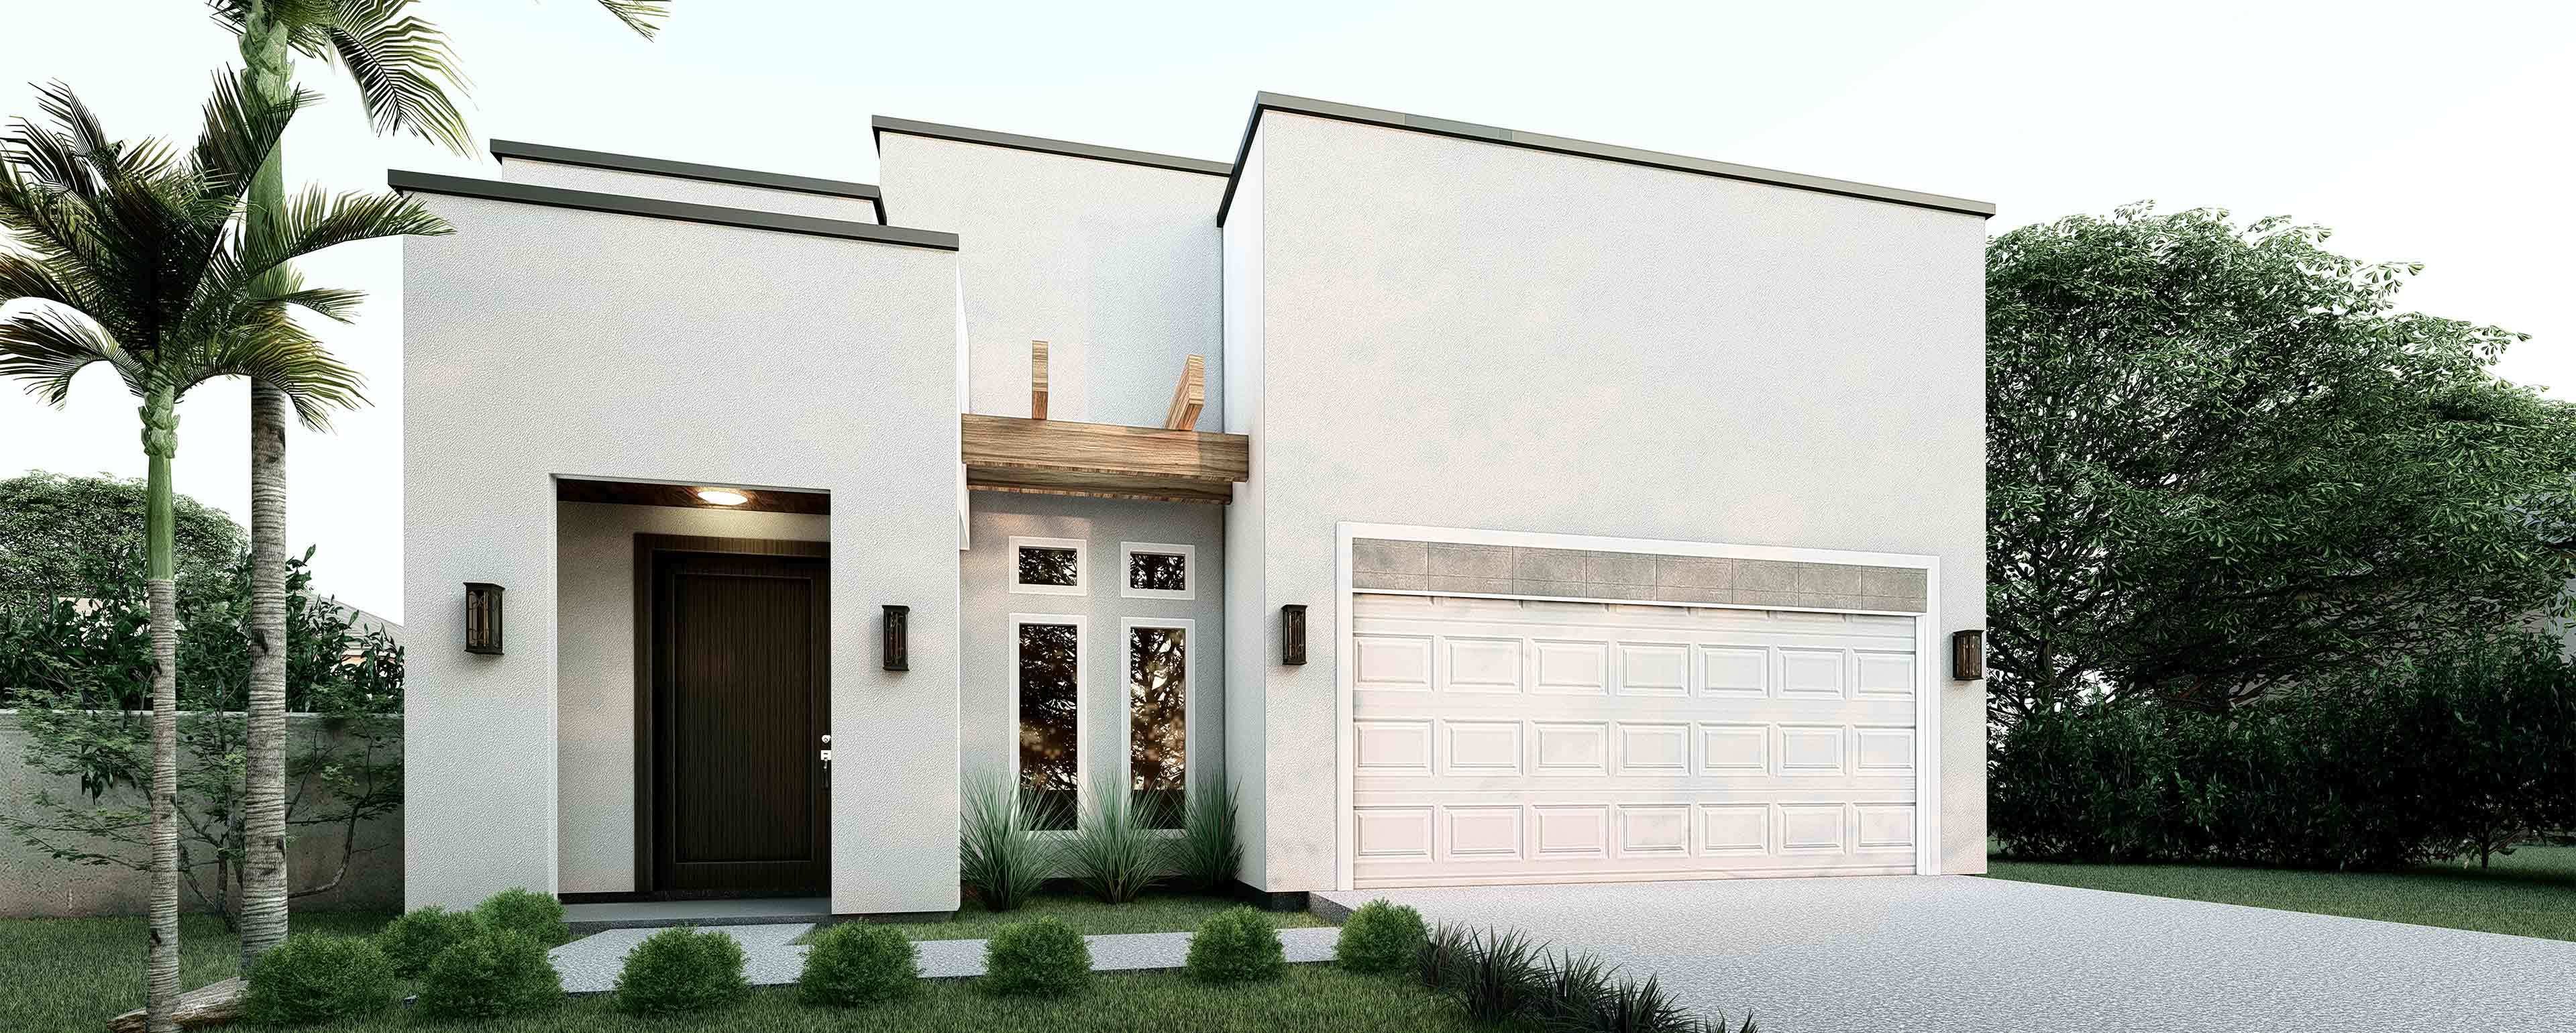 Exterior featured in the 1404 Chital Dr. By KRK Homes in Laredo, TX